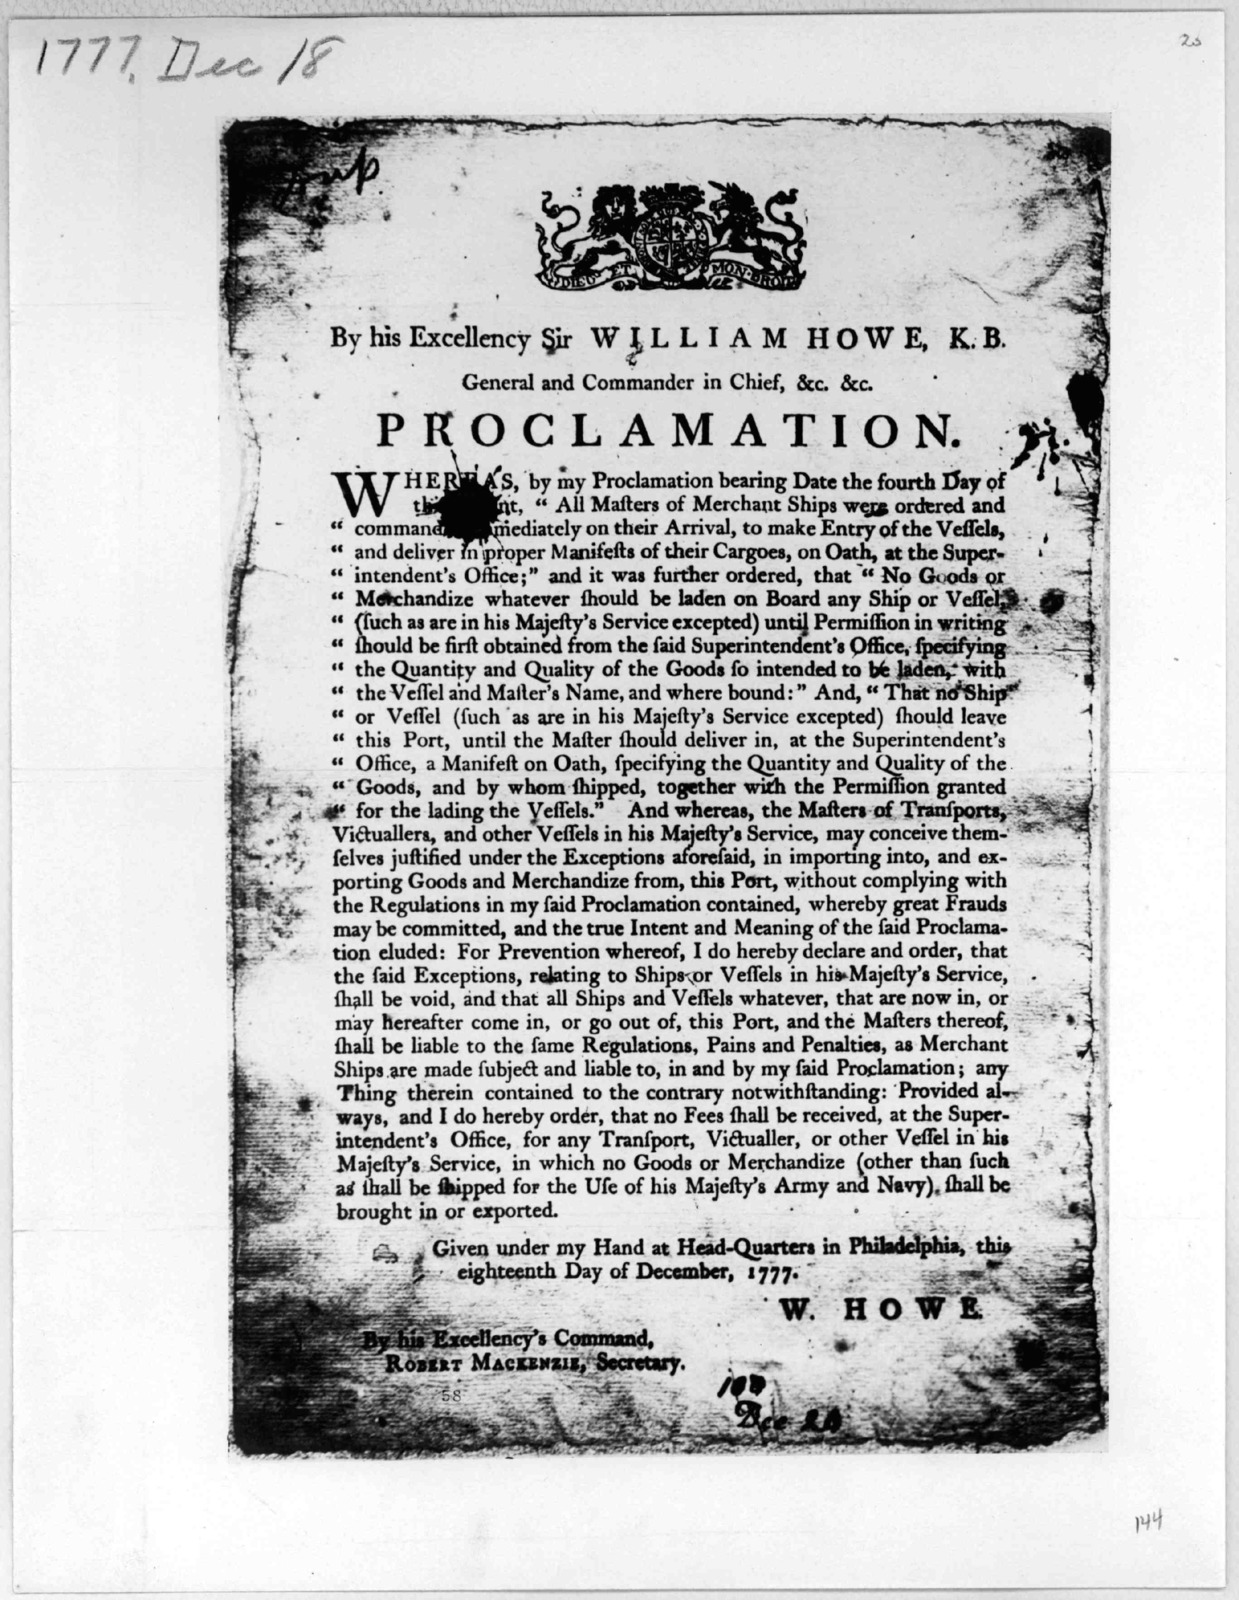 [Arms] By His Excellency Sir William Howe, K. B. General and Commander in Chief, &c. &c. proclamation [Modifying his proclamation of December 4th] Given under my hand at Headquarters, in Philadelphia, this eighteenth day of December, 1777. W How